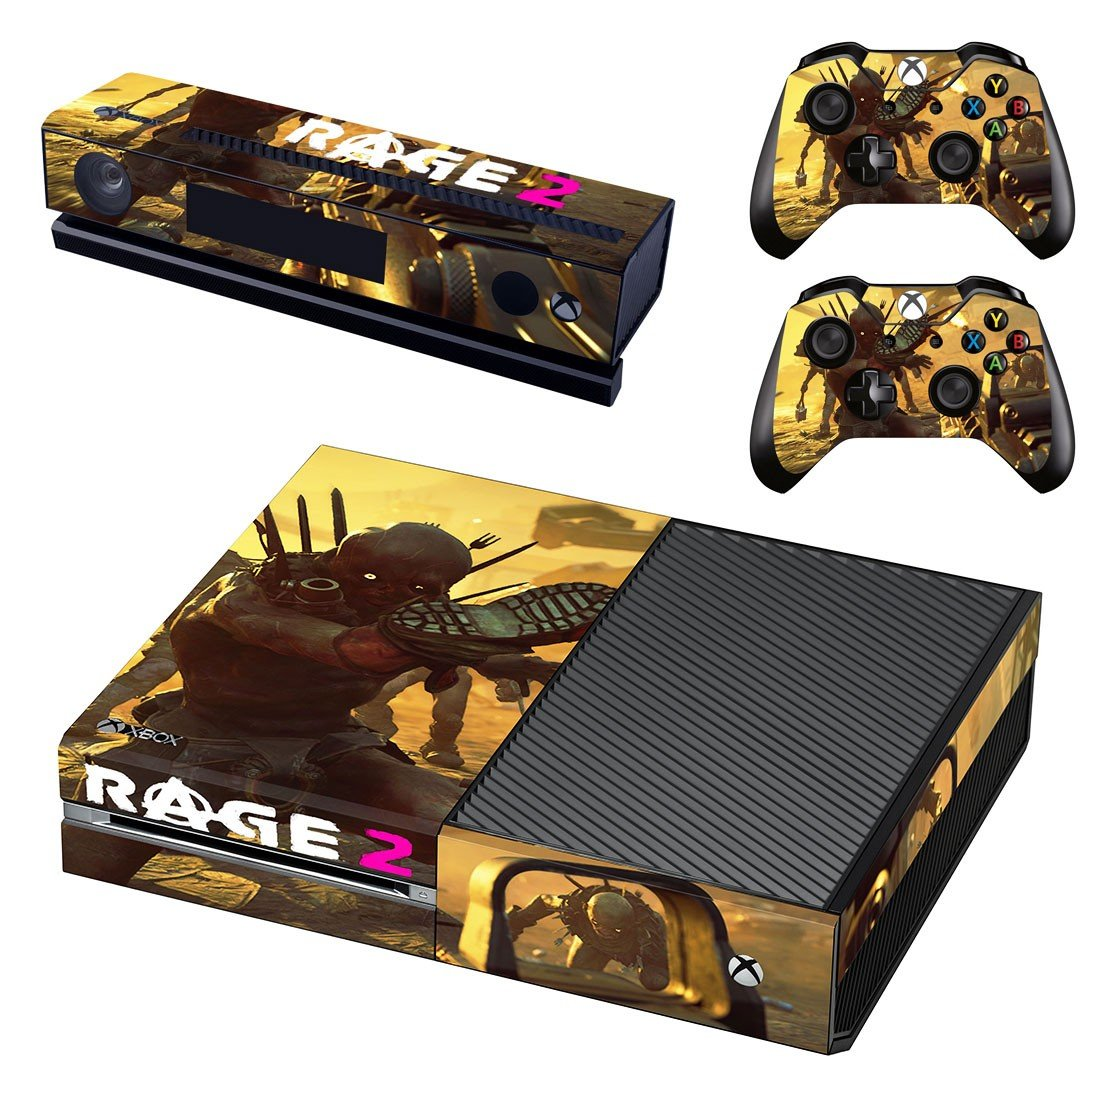 Rage 2 decal skin sticker for Xbox One console and controllers